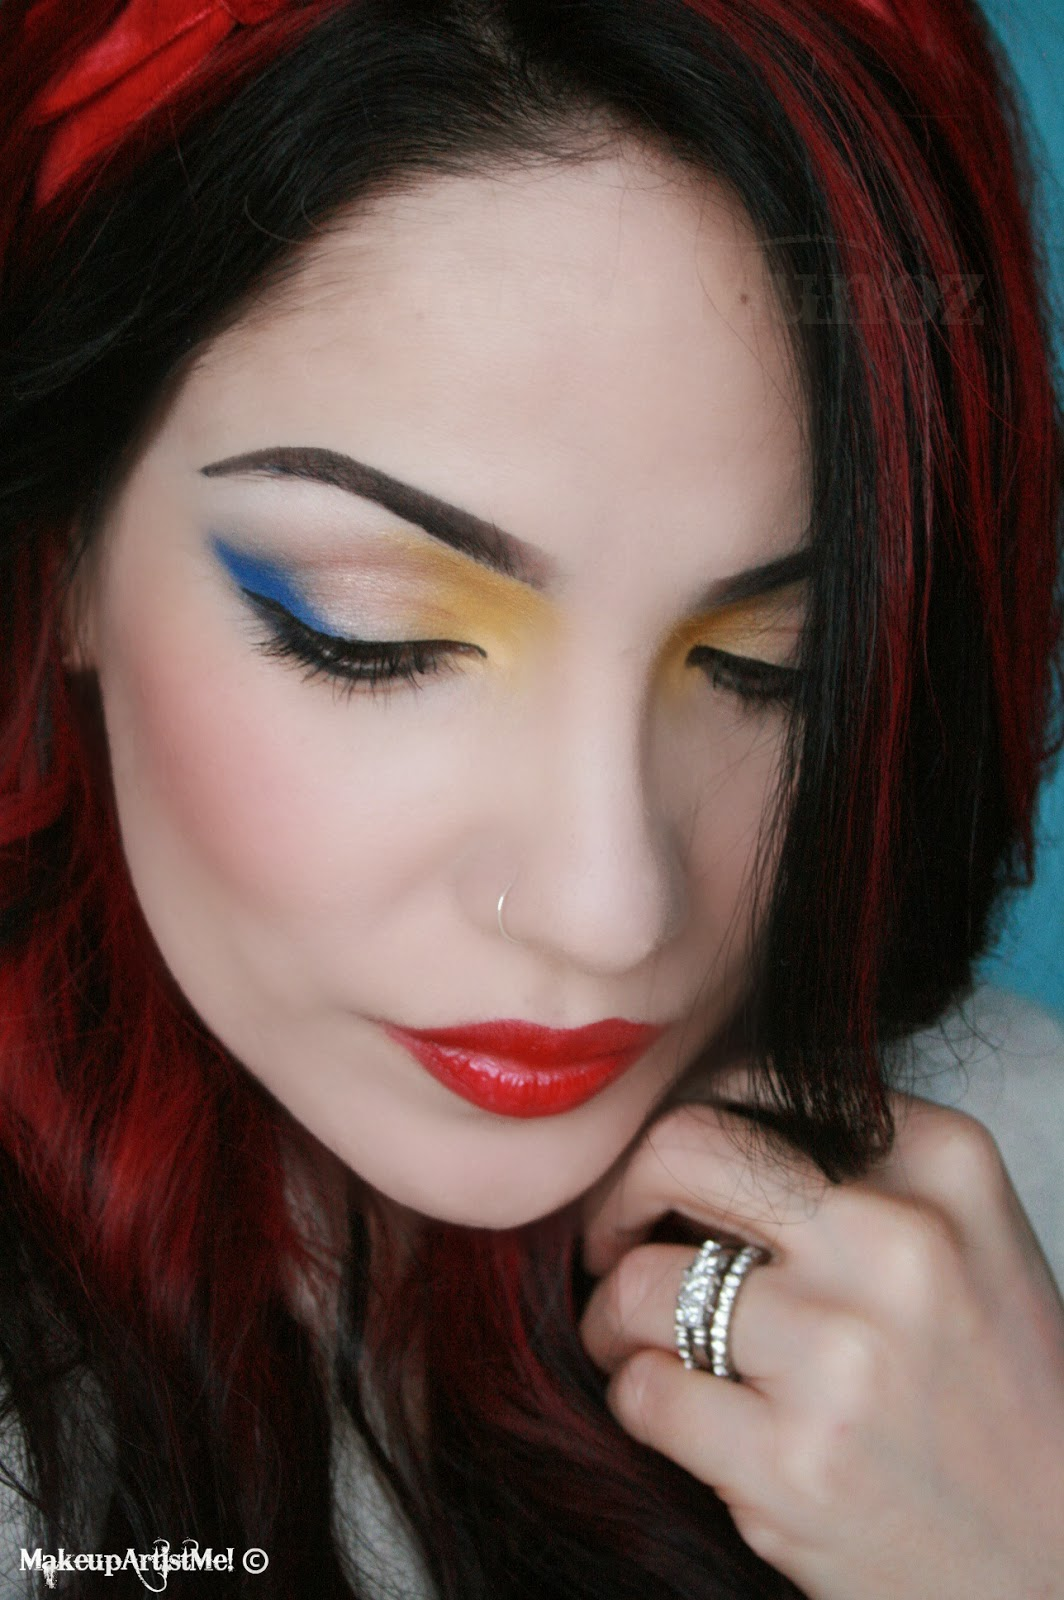 Make Up Tutorial For Girls: Make-up Artist Me!: Like Snow White -- A Snow White